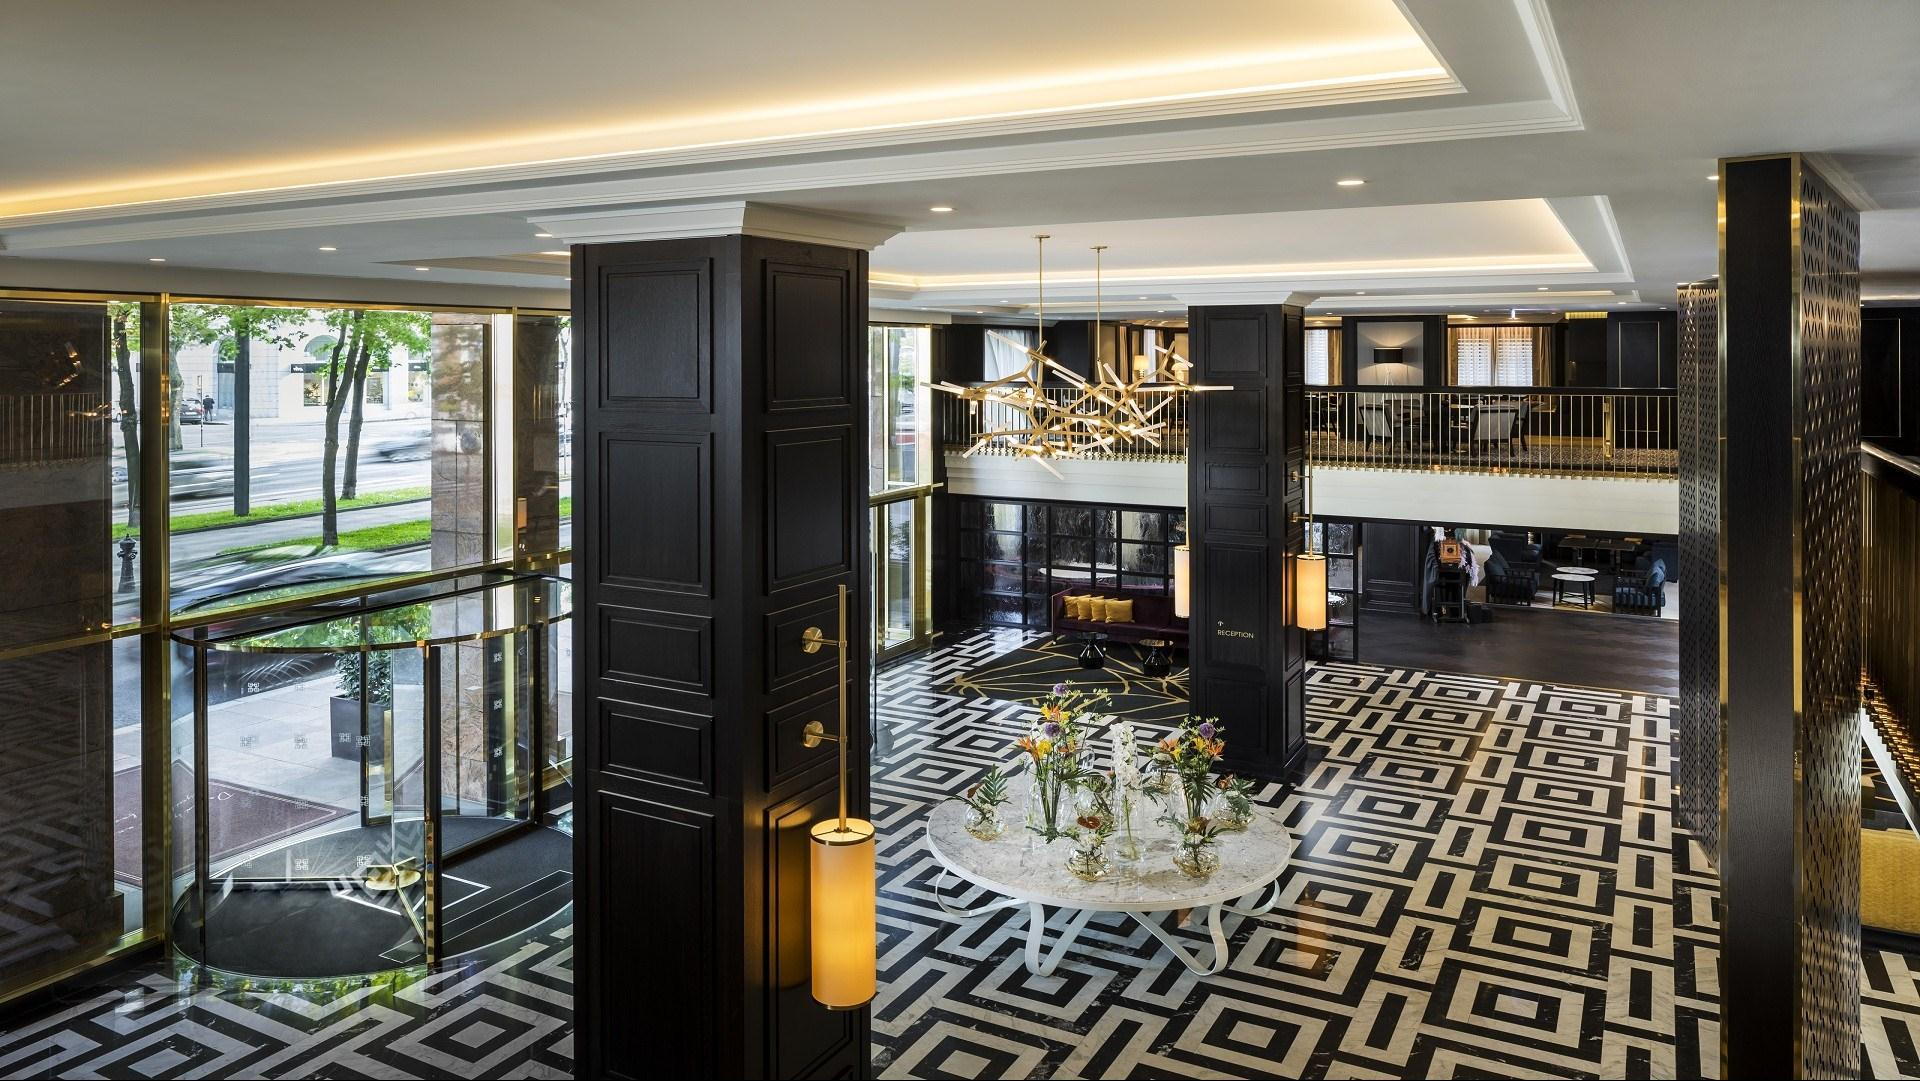 Meeting and event spaces at hilton austria hotels vienna and -  Largest Room Meeting Space Hilton Vienna Plaza Hotel